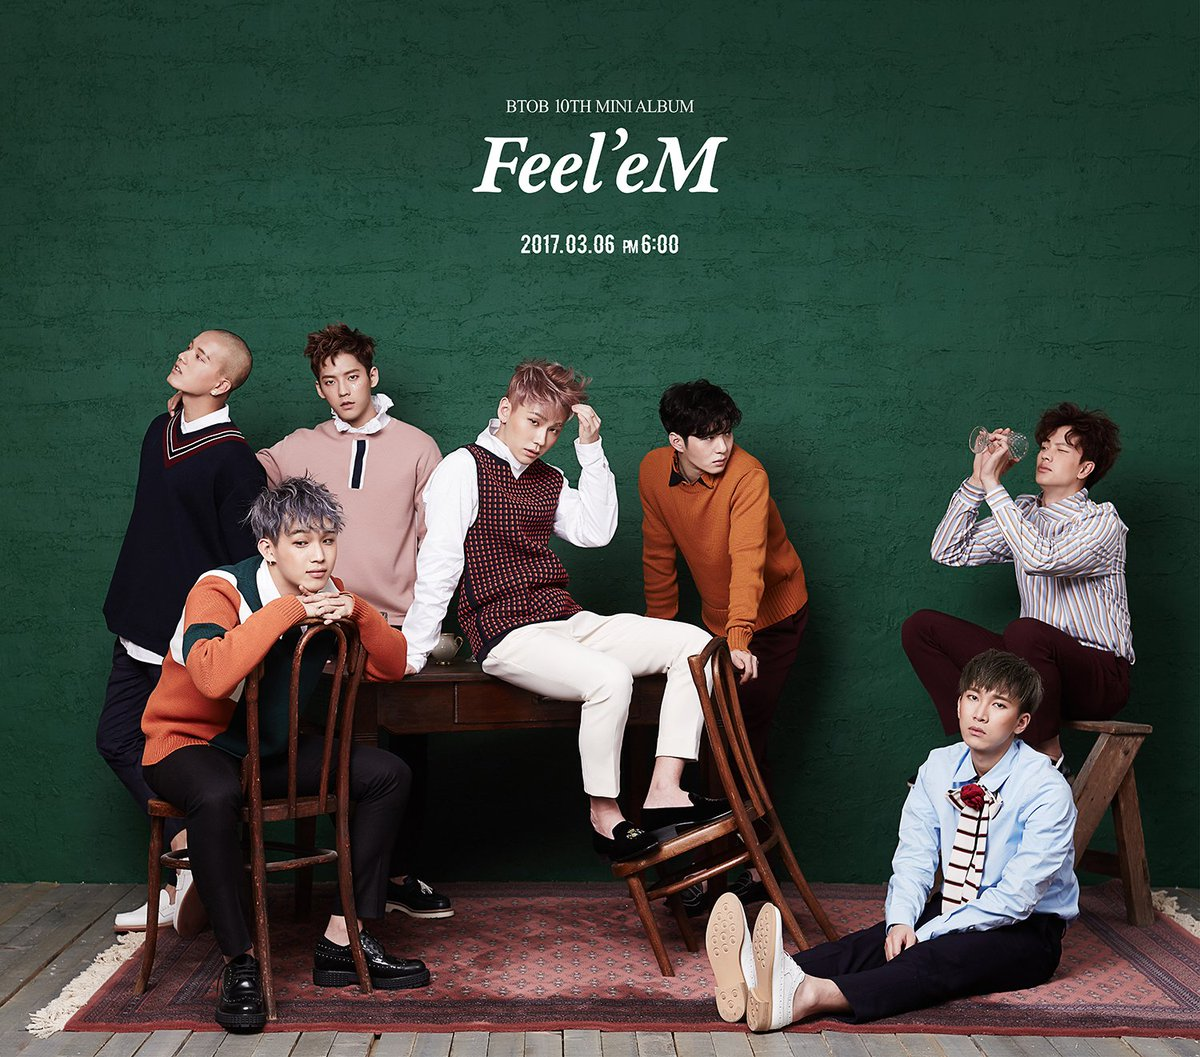 BTOB Thanks Their Fans For Helping Them Reach No. 1 On Music Charts